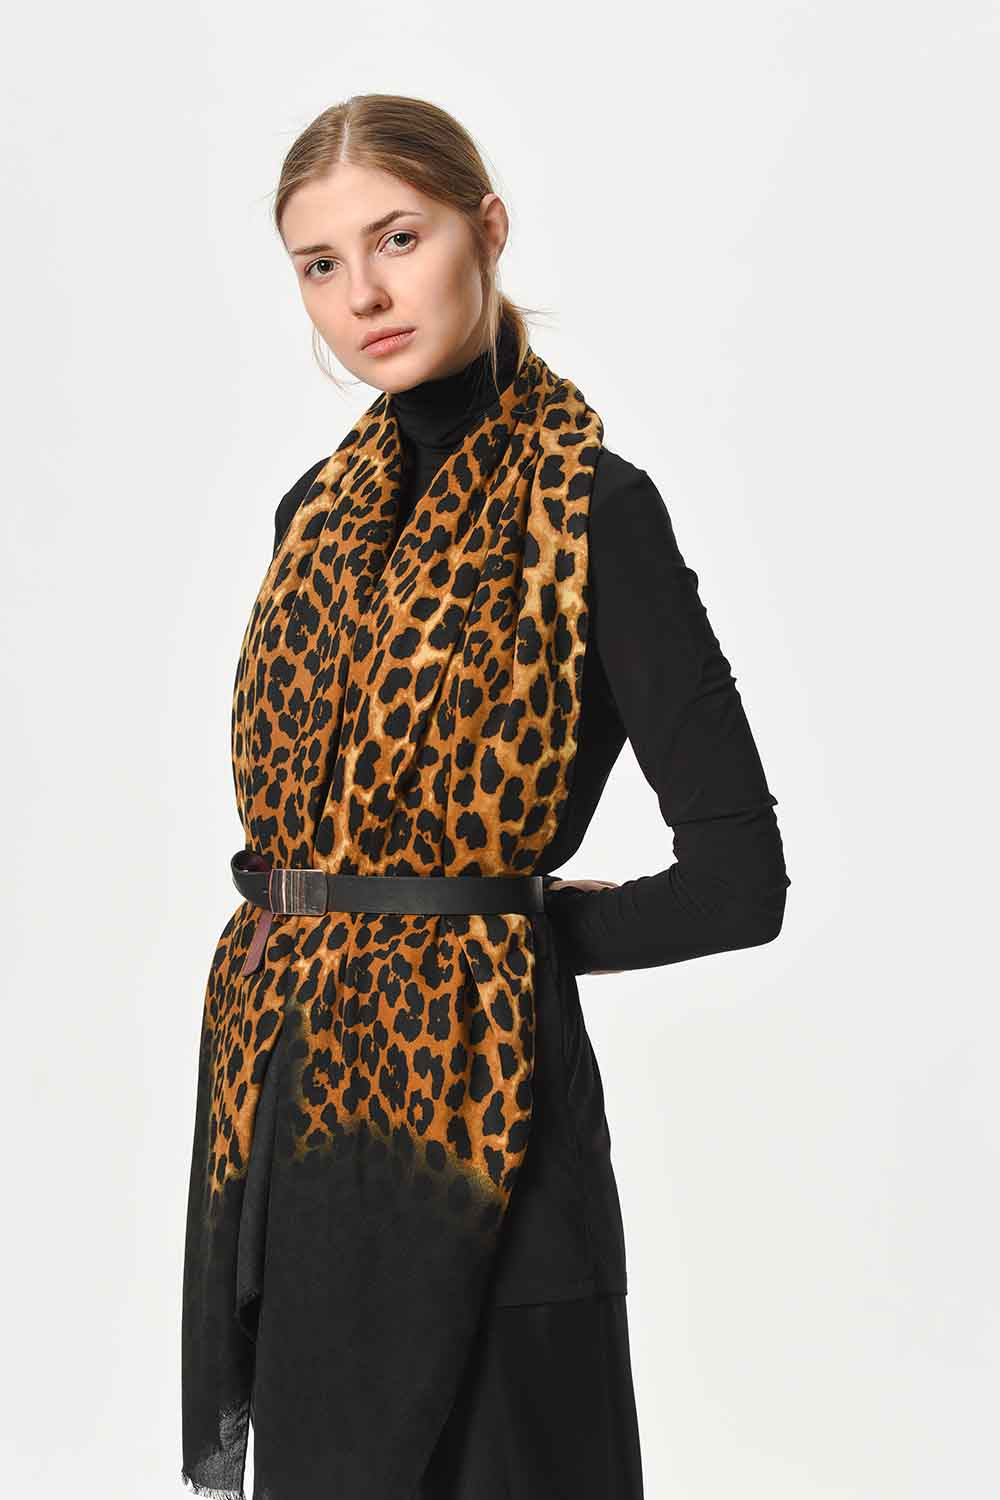 MIZALLE Leopard Patterned Thin Luxury Shawl (Black) (1)